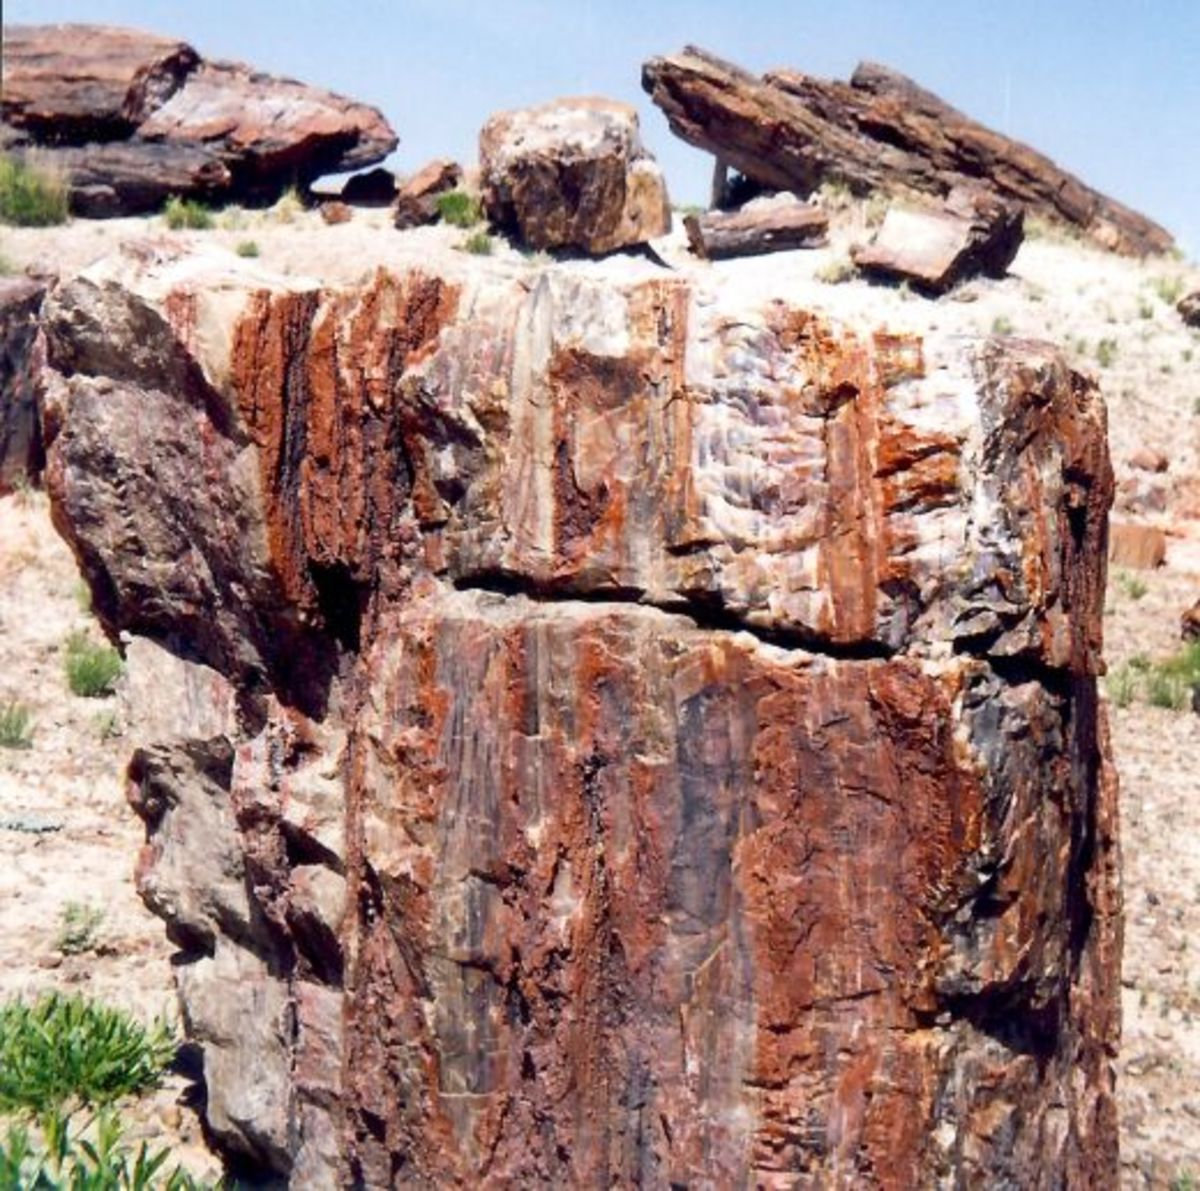 Massive amounts of Petrified wood found in the Petrified Forest National Park